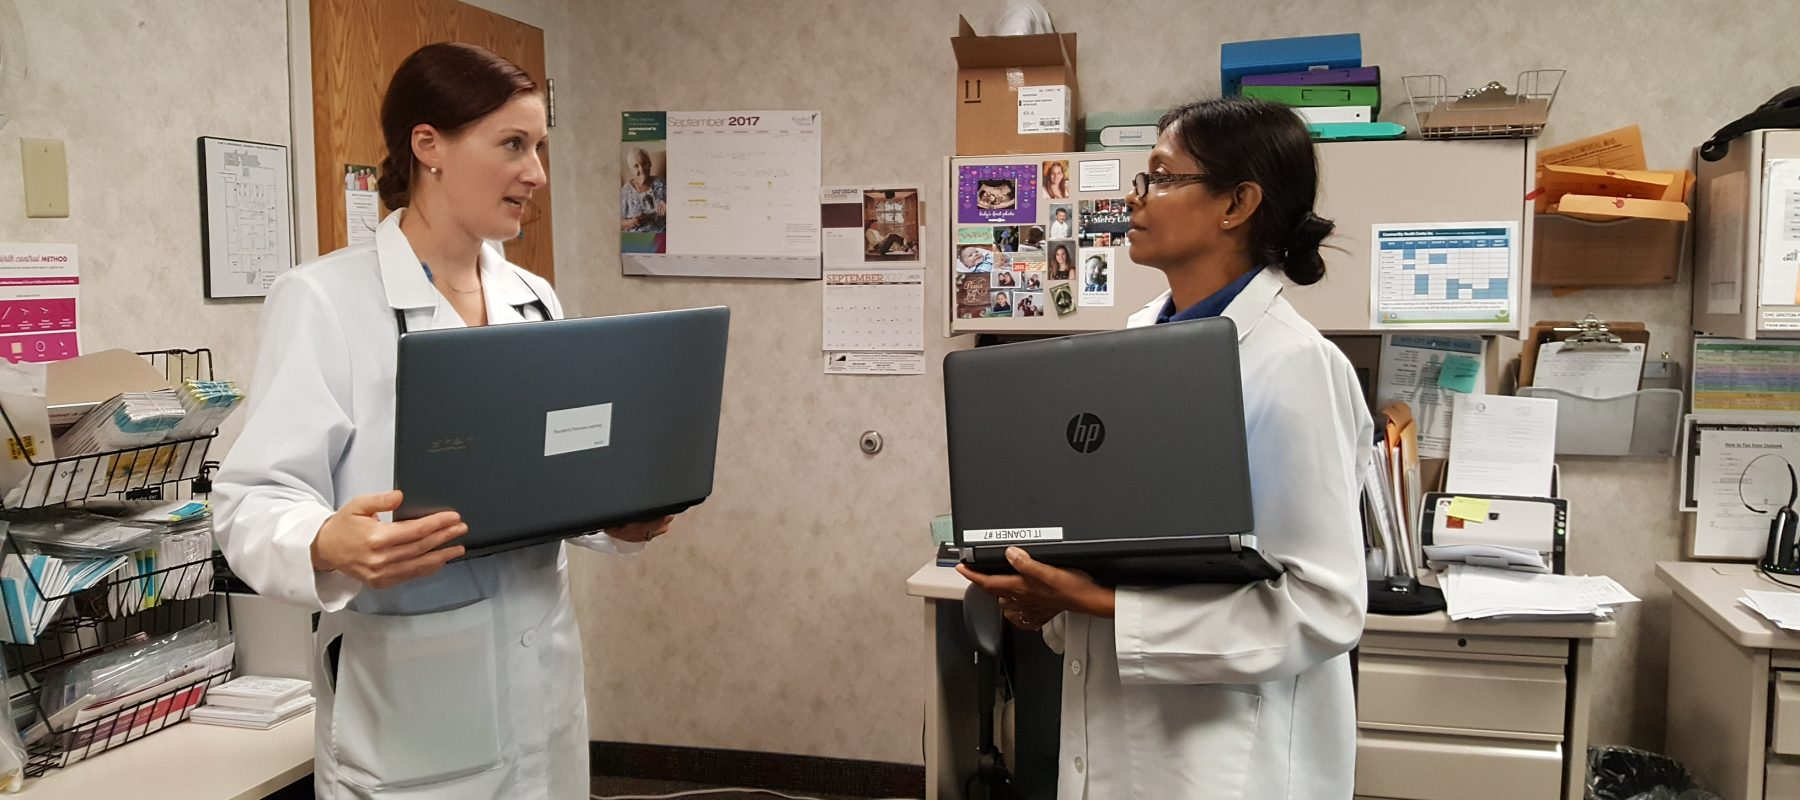 Two women in white coats talking to each other holding laptops in a doctors office